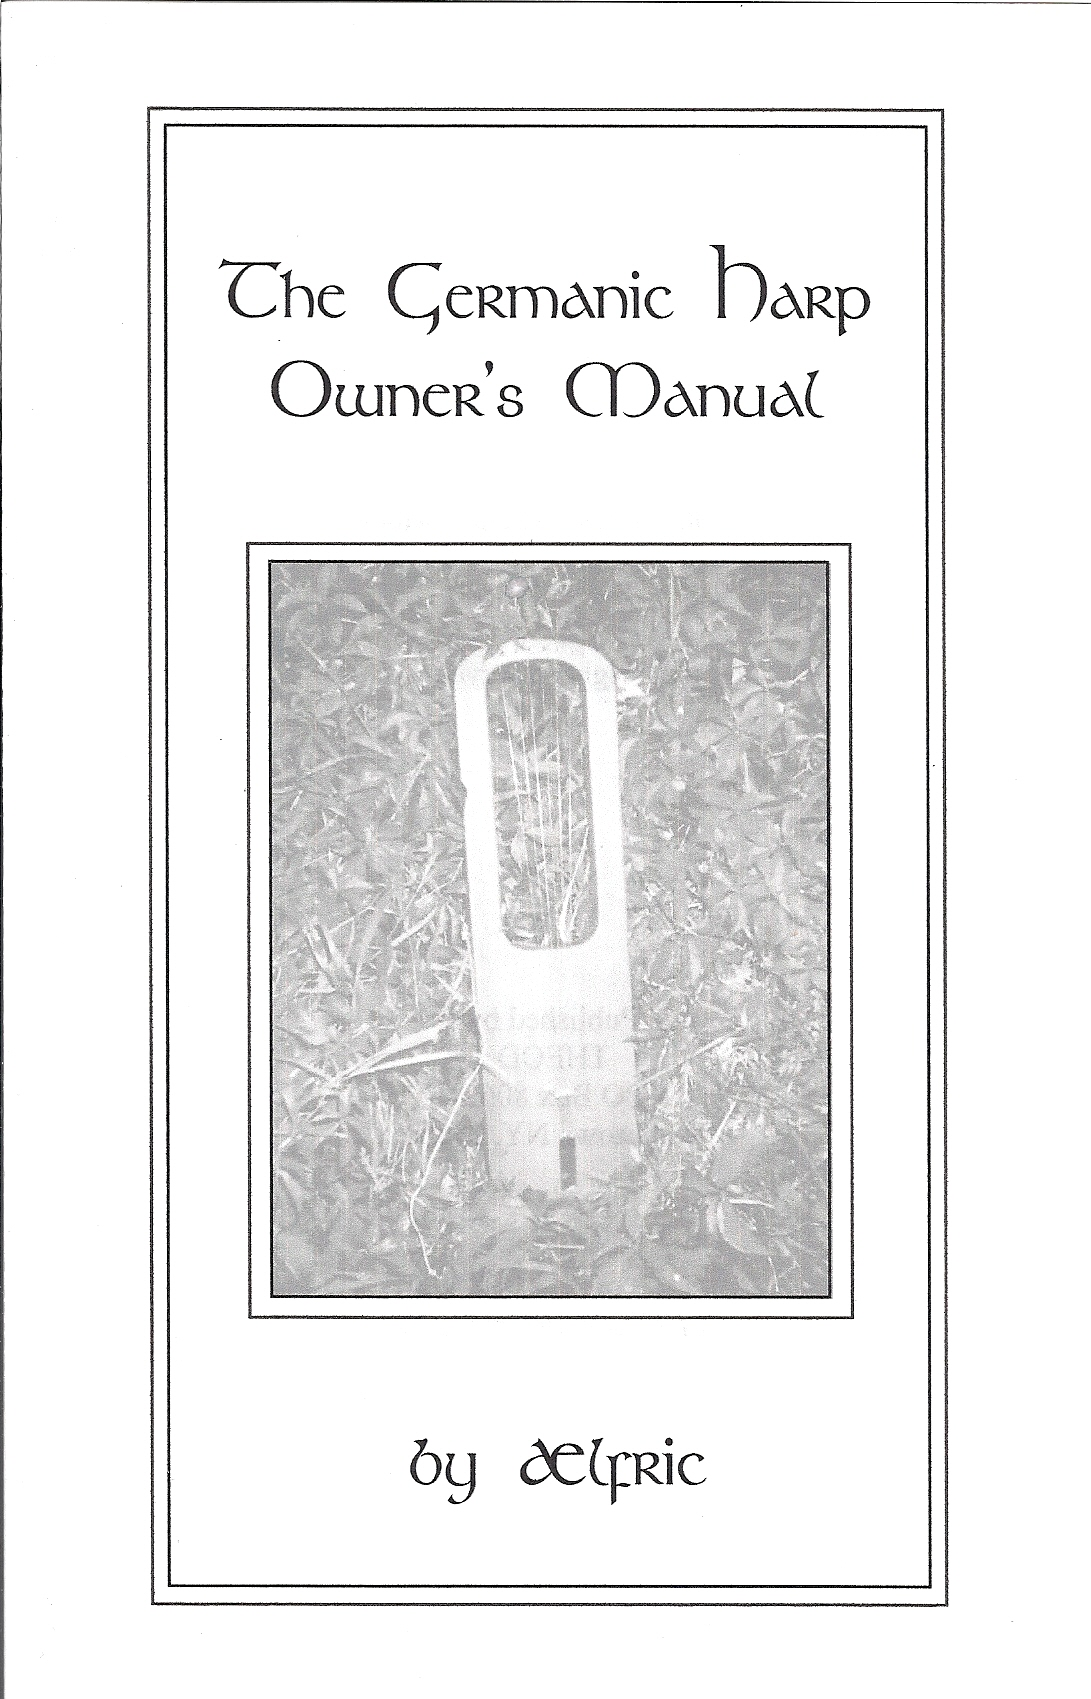 Aelfric - The Germanic Harp Owners Manual